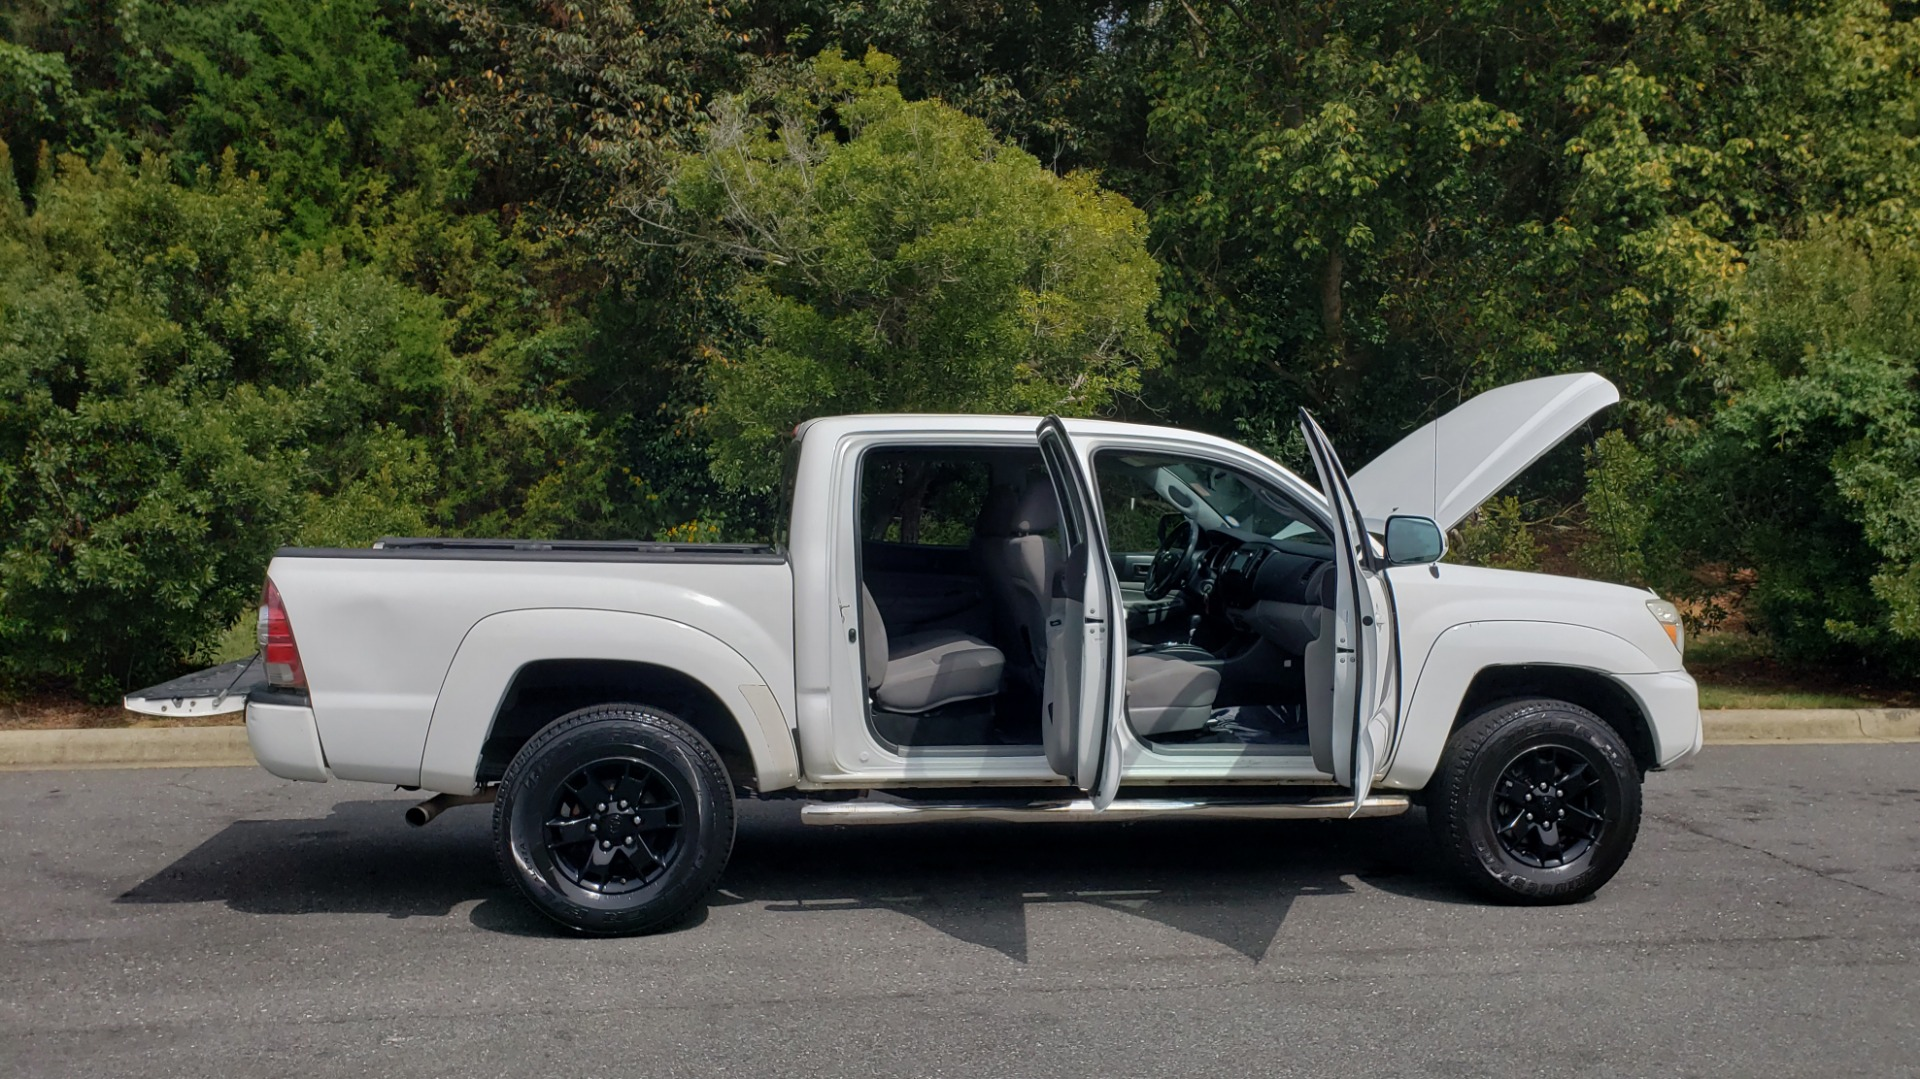 Used 2015 Toyota TACOMA PRERUNNER DOUBLE CAB/ 4-CYL / 4-SPD AUTO / SR PKG / CONV PKG for sale $15,995 at Formula Imports in Charlotte NC 28227 10